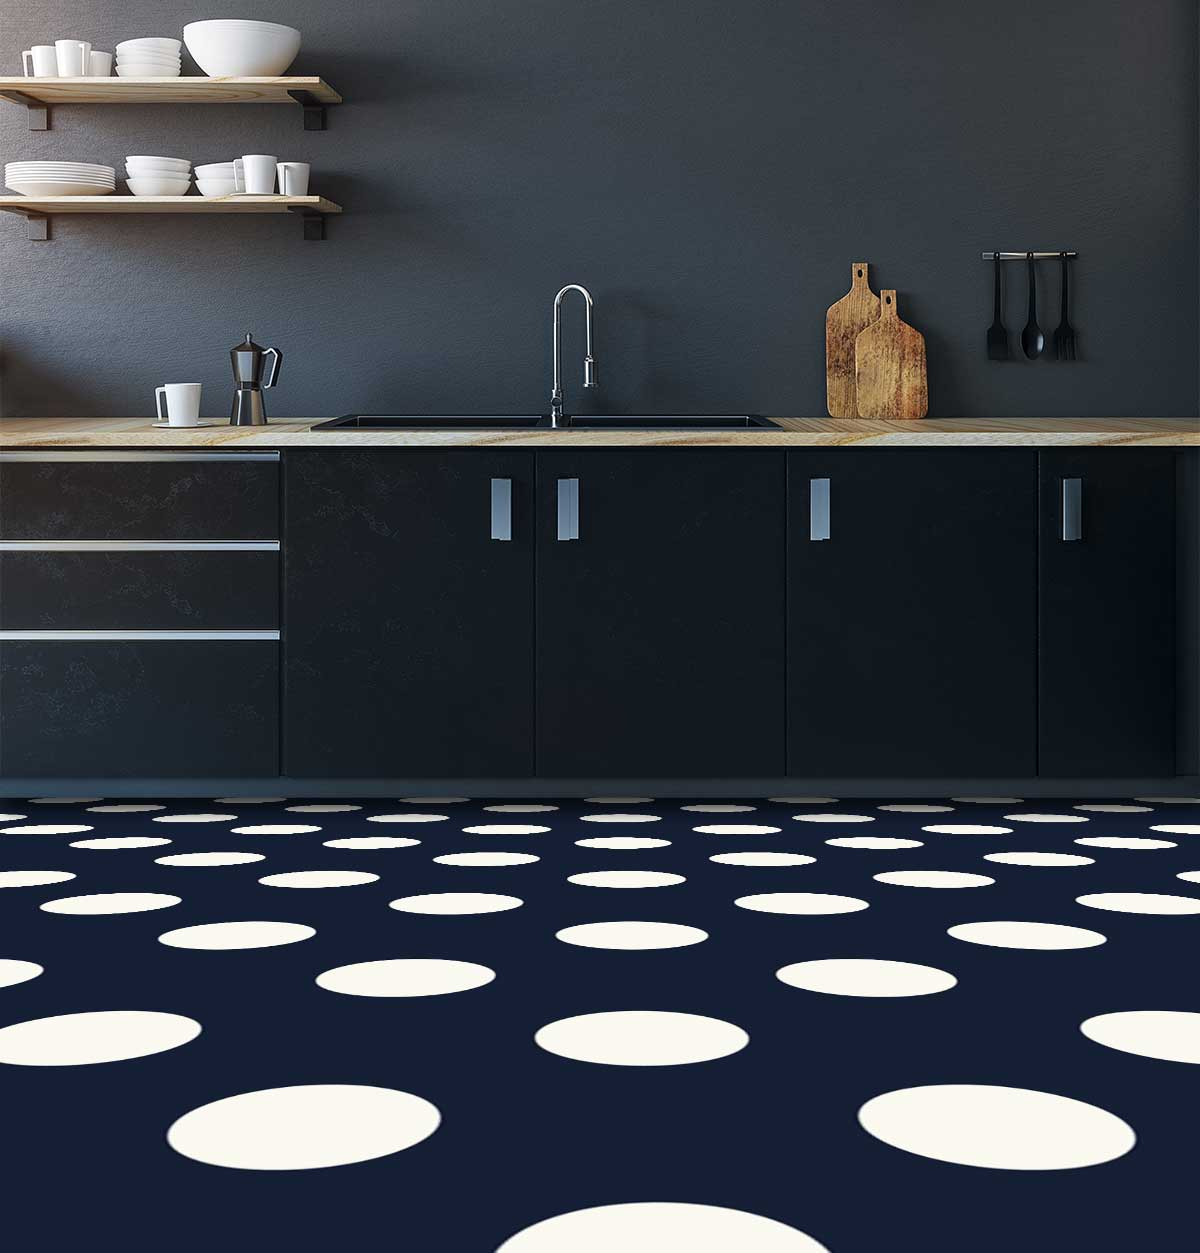 Image showing a kitchen with blue and white Polka Dot flooring used in a blog post about Polka Dot floor tiles from forthefloorandmore.com